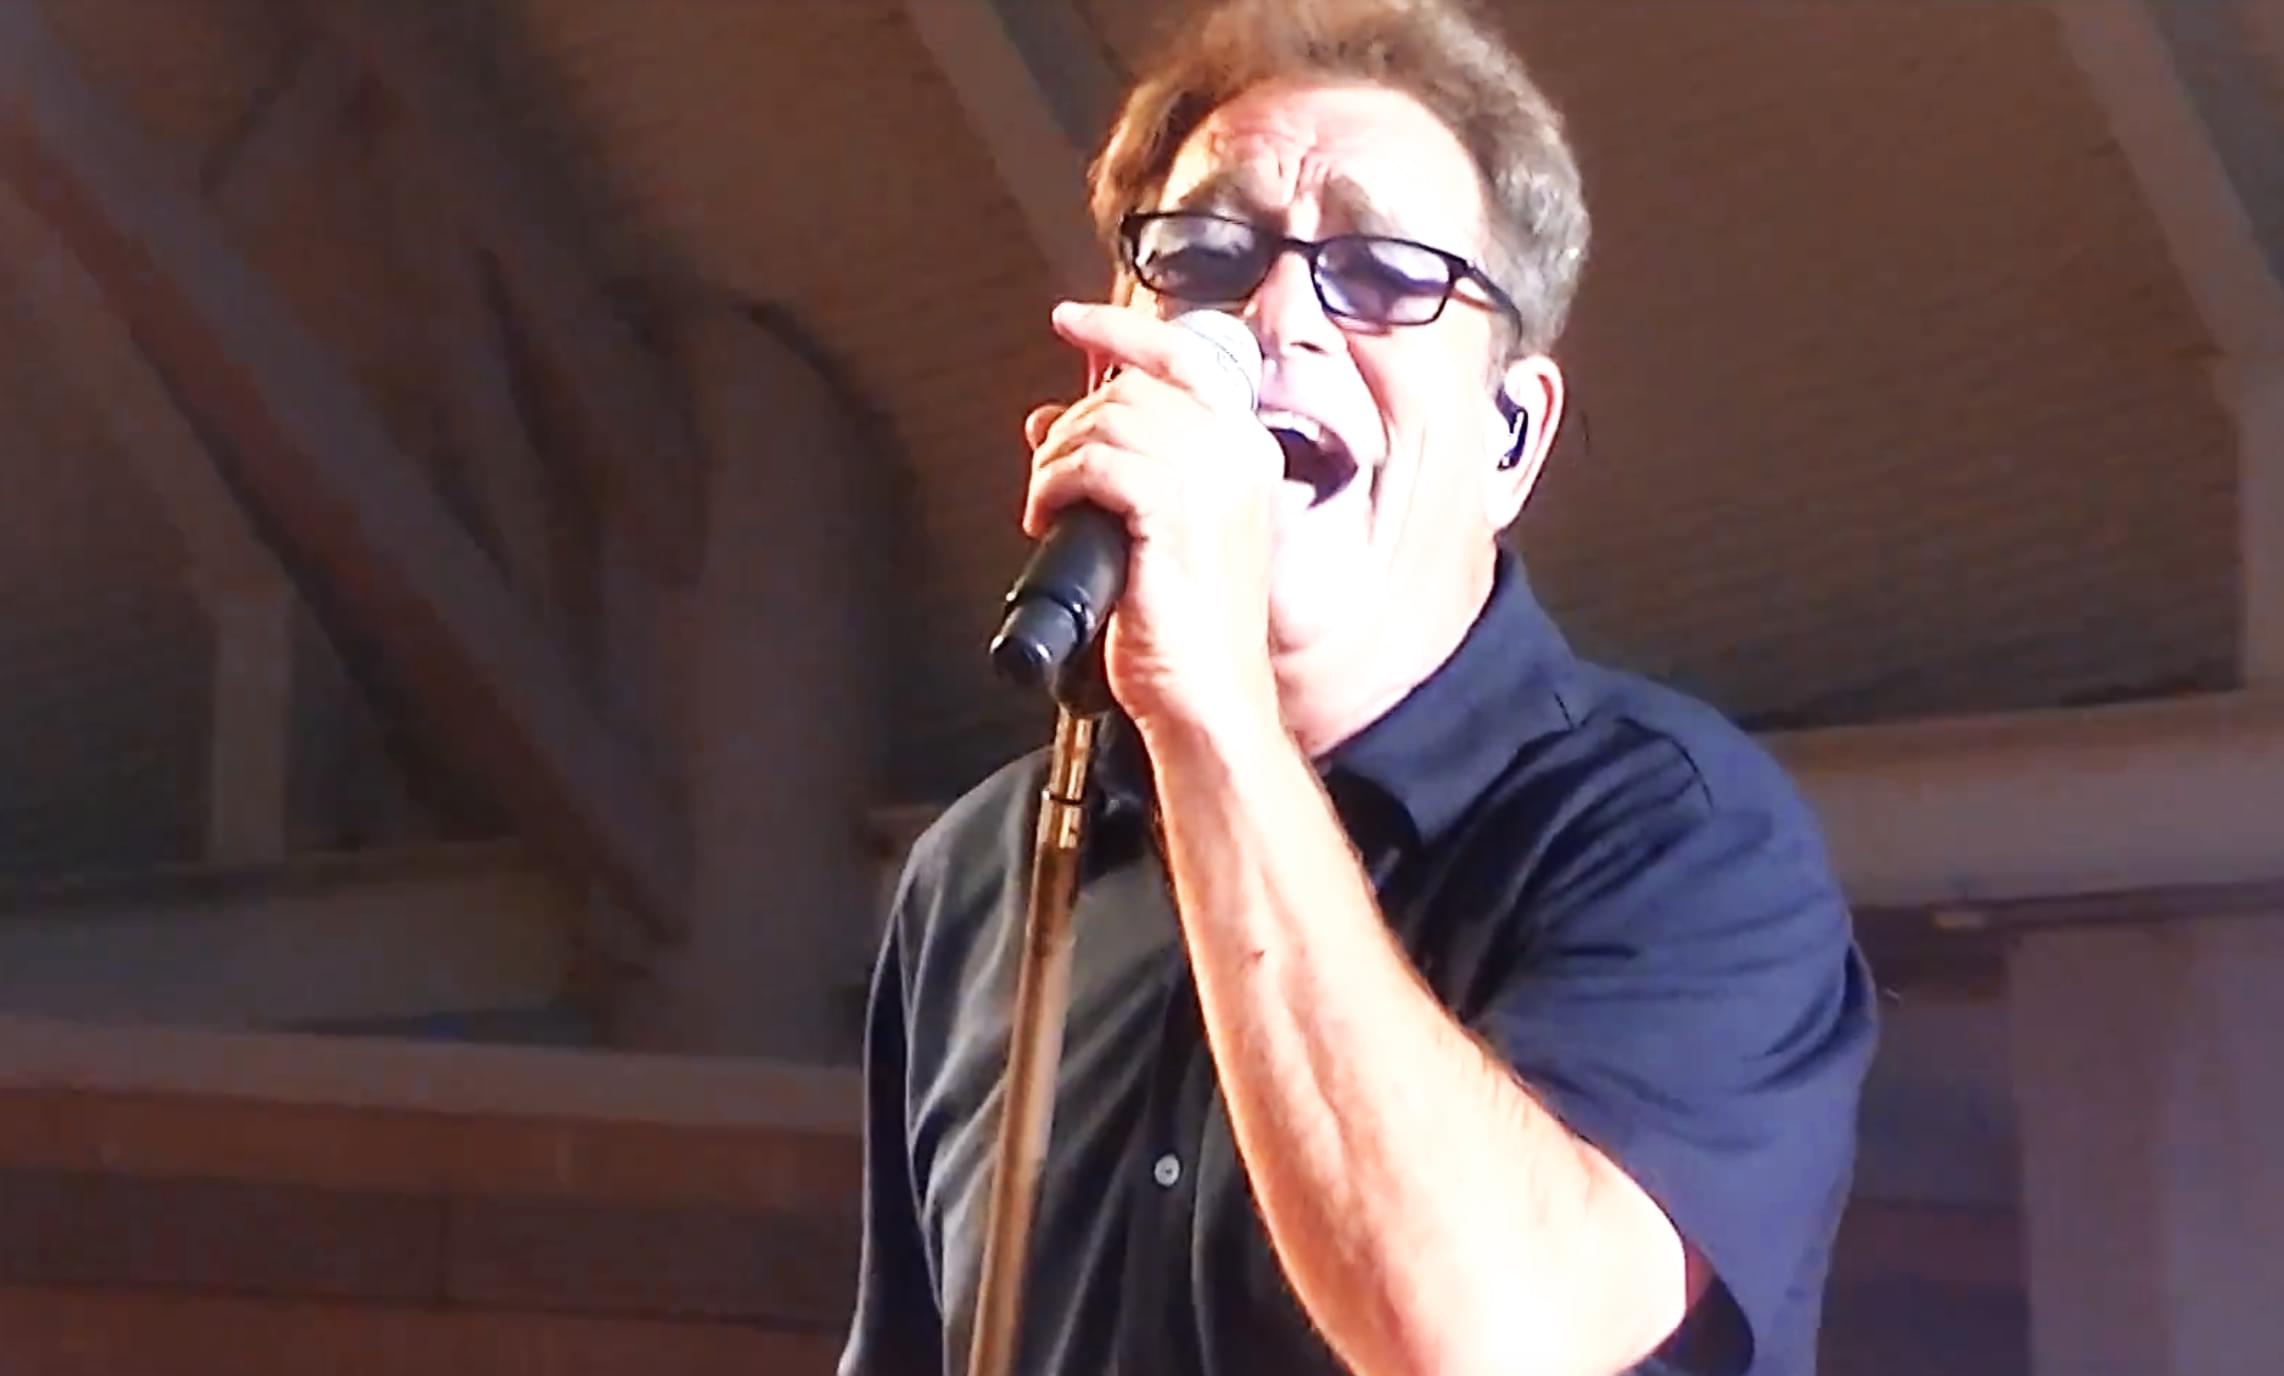 A new Huey Lewis & The News album is on the way